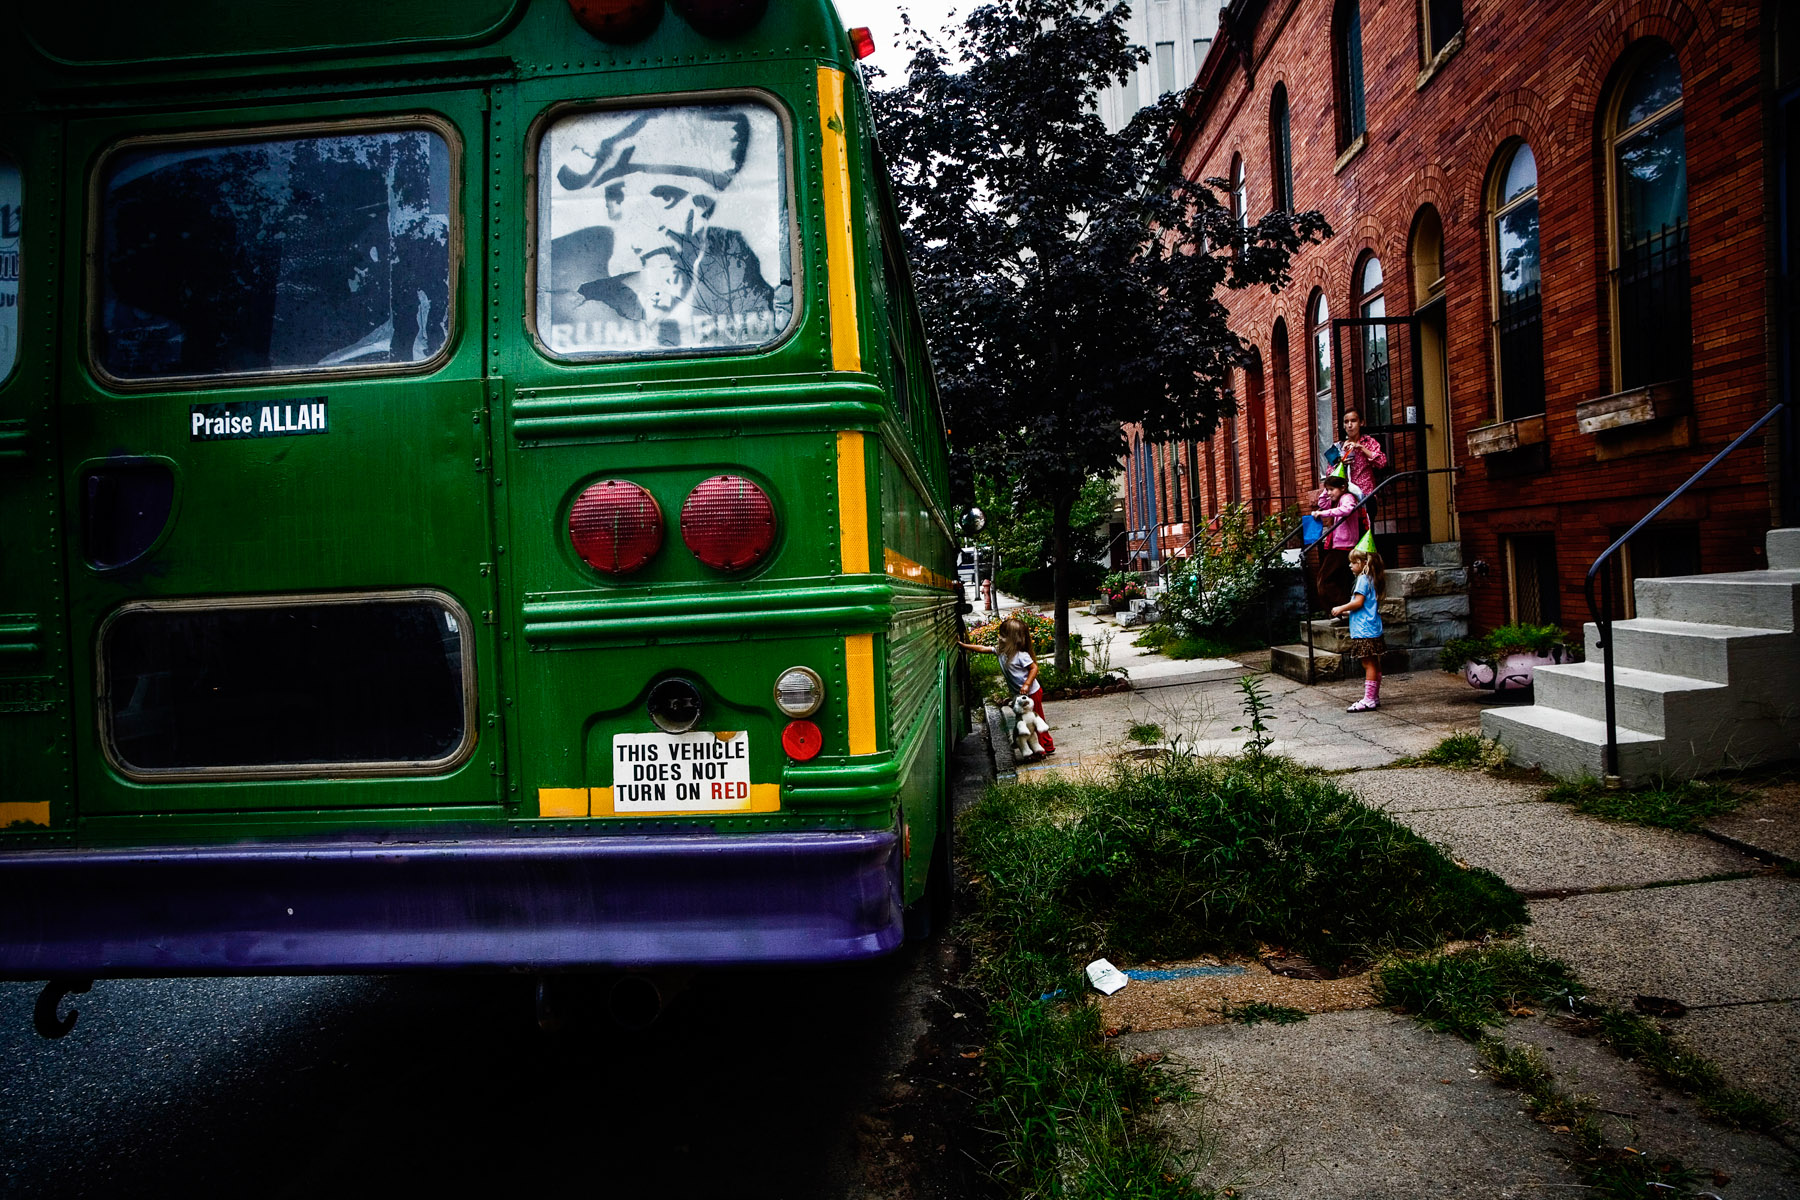 Birthday girl examines the Taqwa-bus infront of St. John's Church on in Charles Village. The church  organized in a functional cheuch, organized by Red Emma's, also featured Vote Hezbollah, al-Thawra, and Omar Waqar, formerly of Washington-based Diacritical. The Kominas are interviewed by Voice of America.Michael Mohammad Knight, and five Taqwacore bands embark on the world first ever Muslim punk musical genre tour, across Northeast of the USA in August of 2007.   The Taqwacore Bands are: Vote Hezbollah, The Kominas, Omar Waqar from DiaCritical, Al Tharwa, Ze Beoble and Secret Trial Five .